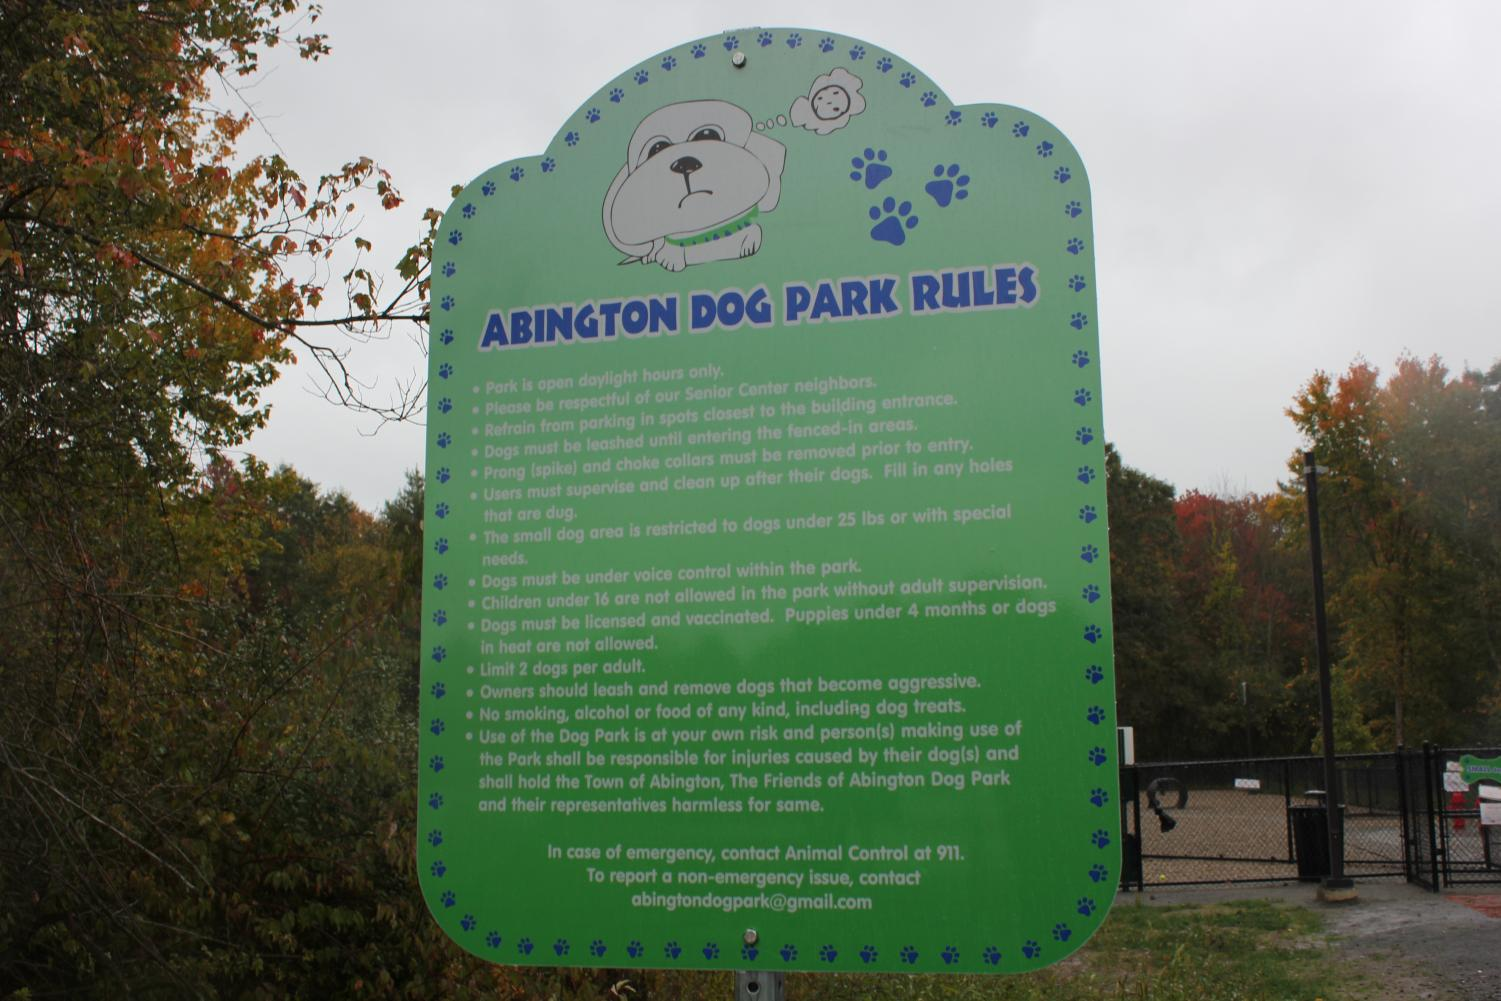 The+rules+at+the+Abington+Dog+Park+are+posted+at+the+entrance.+photographed+on+10%2F9%2F19